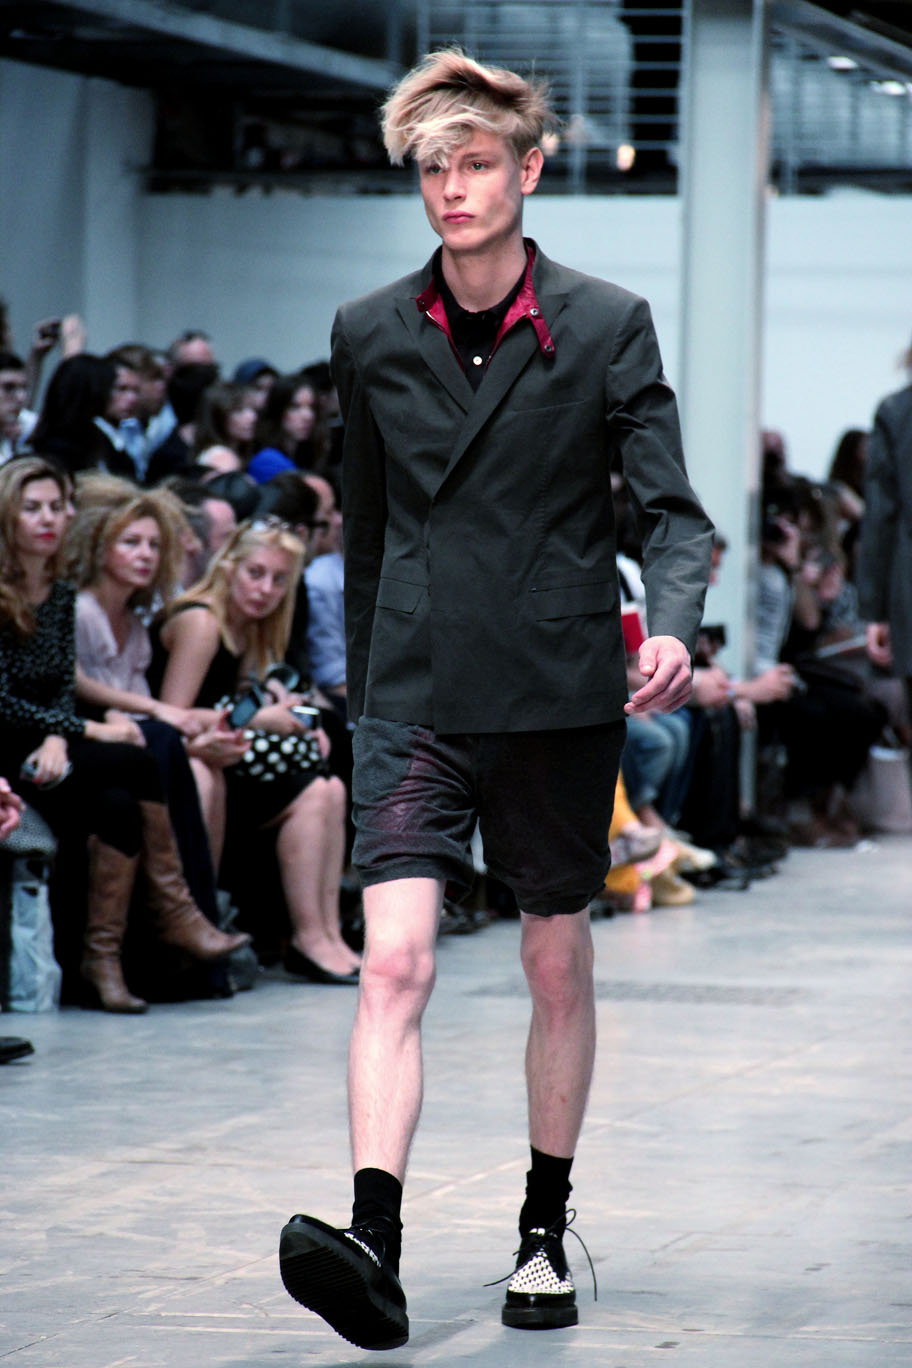 costume-national-homme-spring-summer-2012-men-collection-milano-fashion-week-2012-costume-national-homme-fashion-show-catwalk